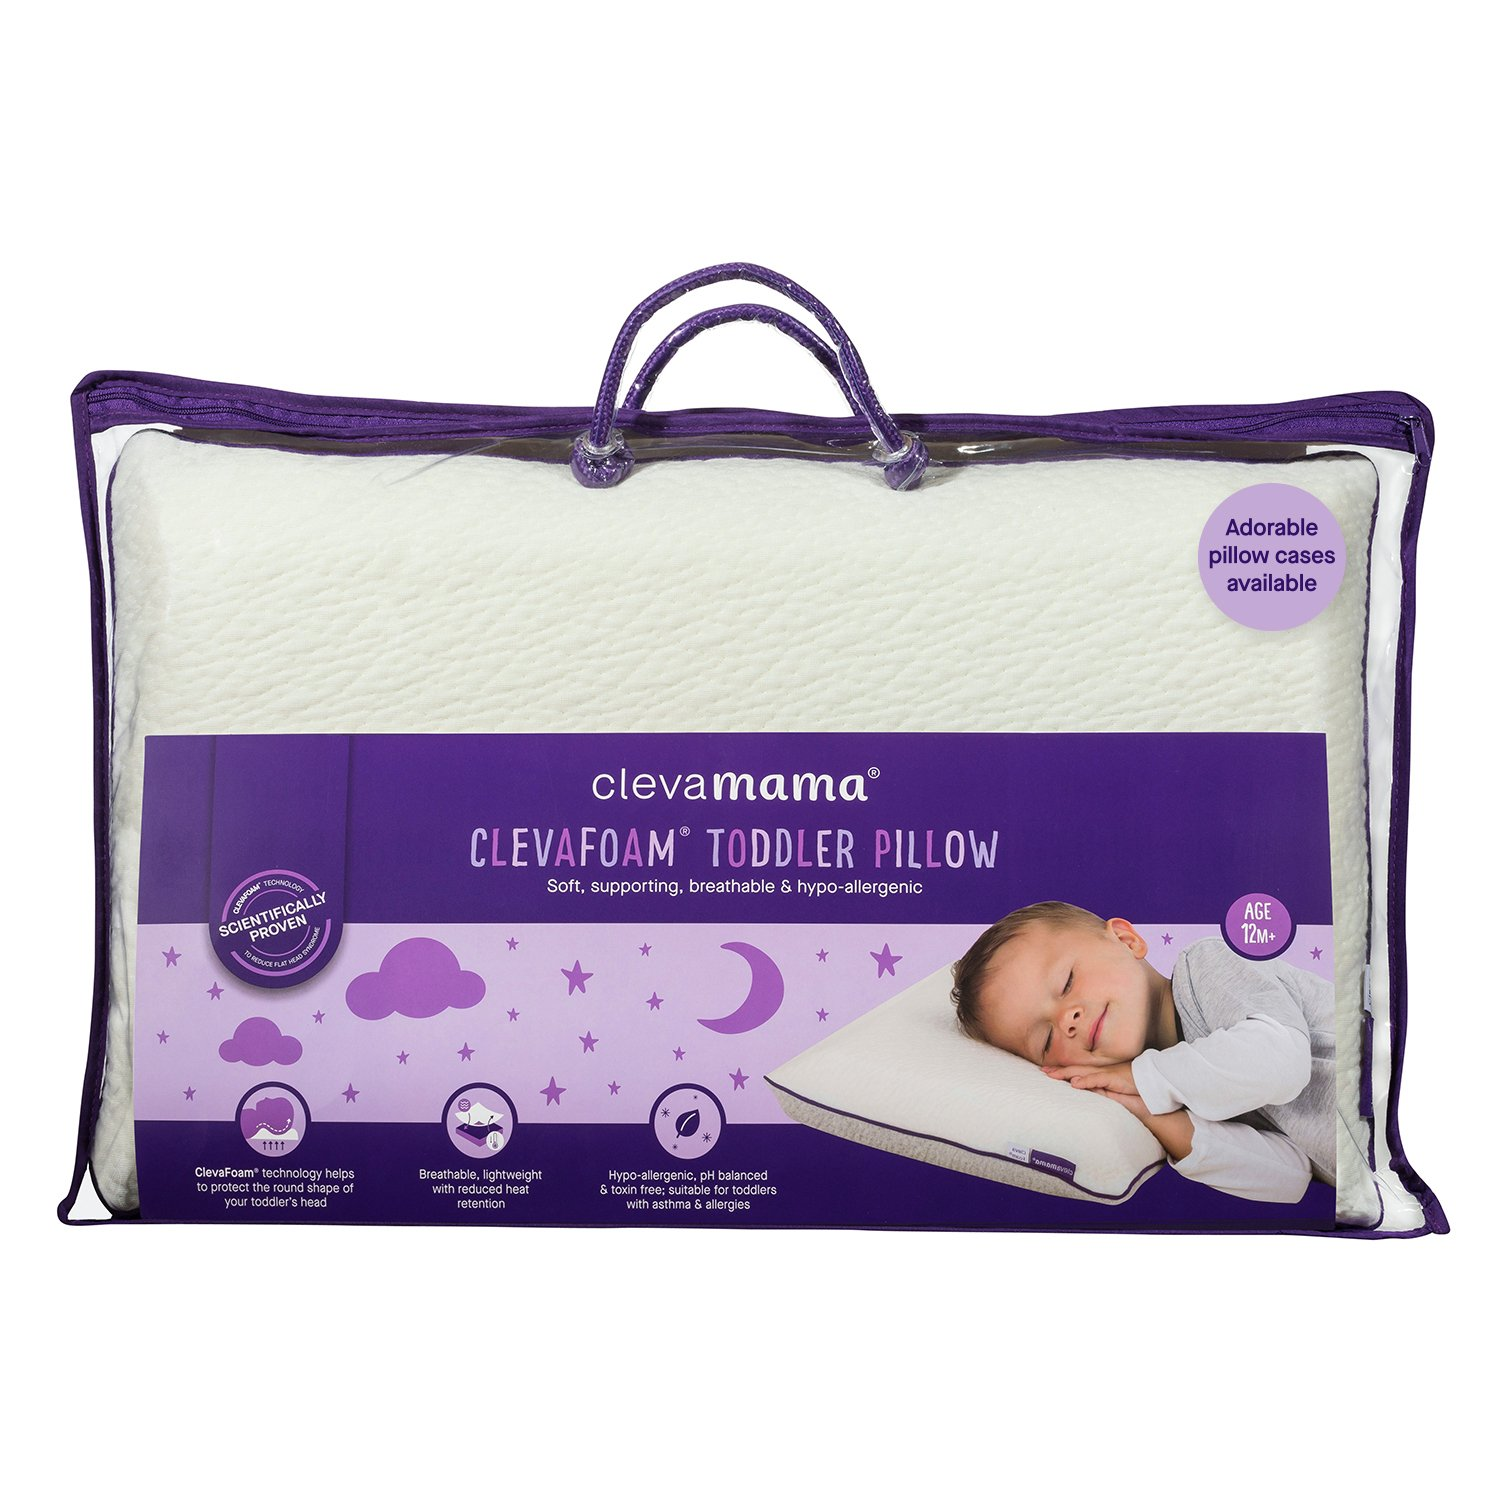 Clevamama ClevaFoam Toddler Pillow (+12 months)